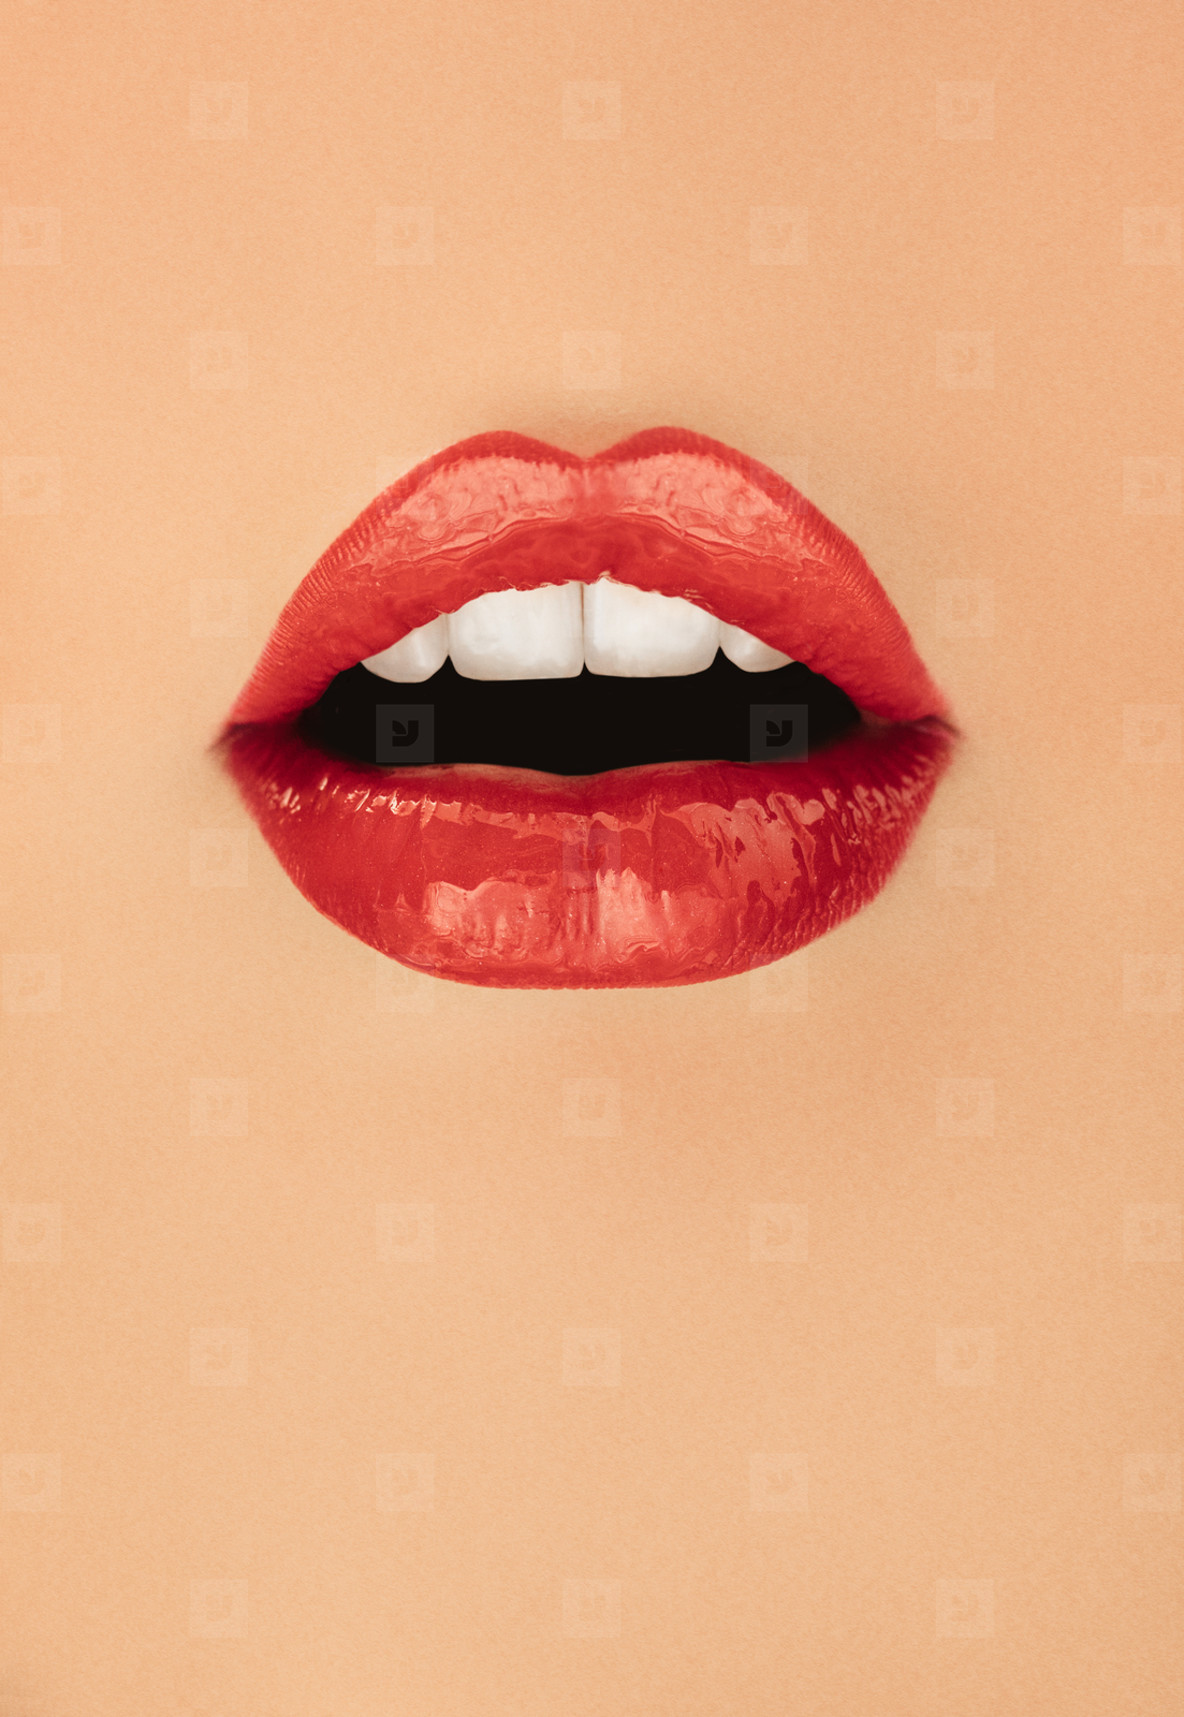 Poster of woman with red lipstick